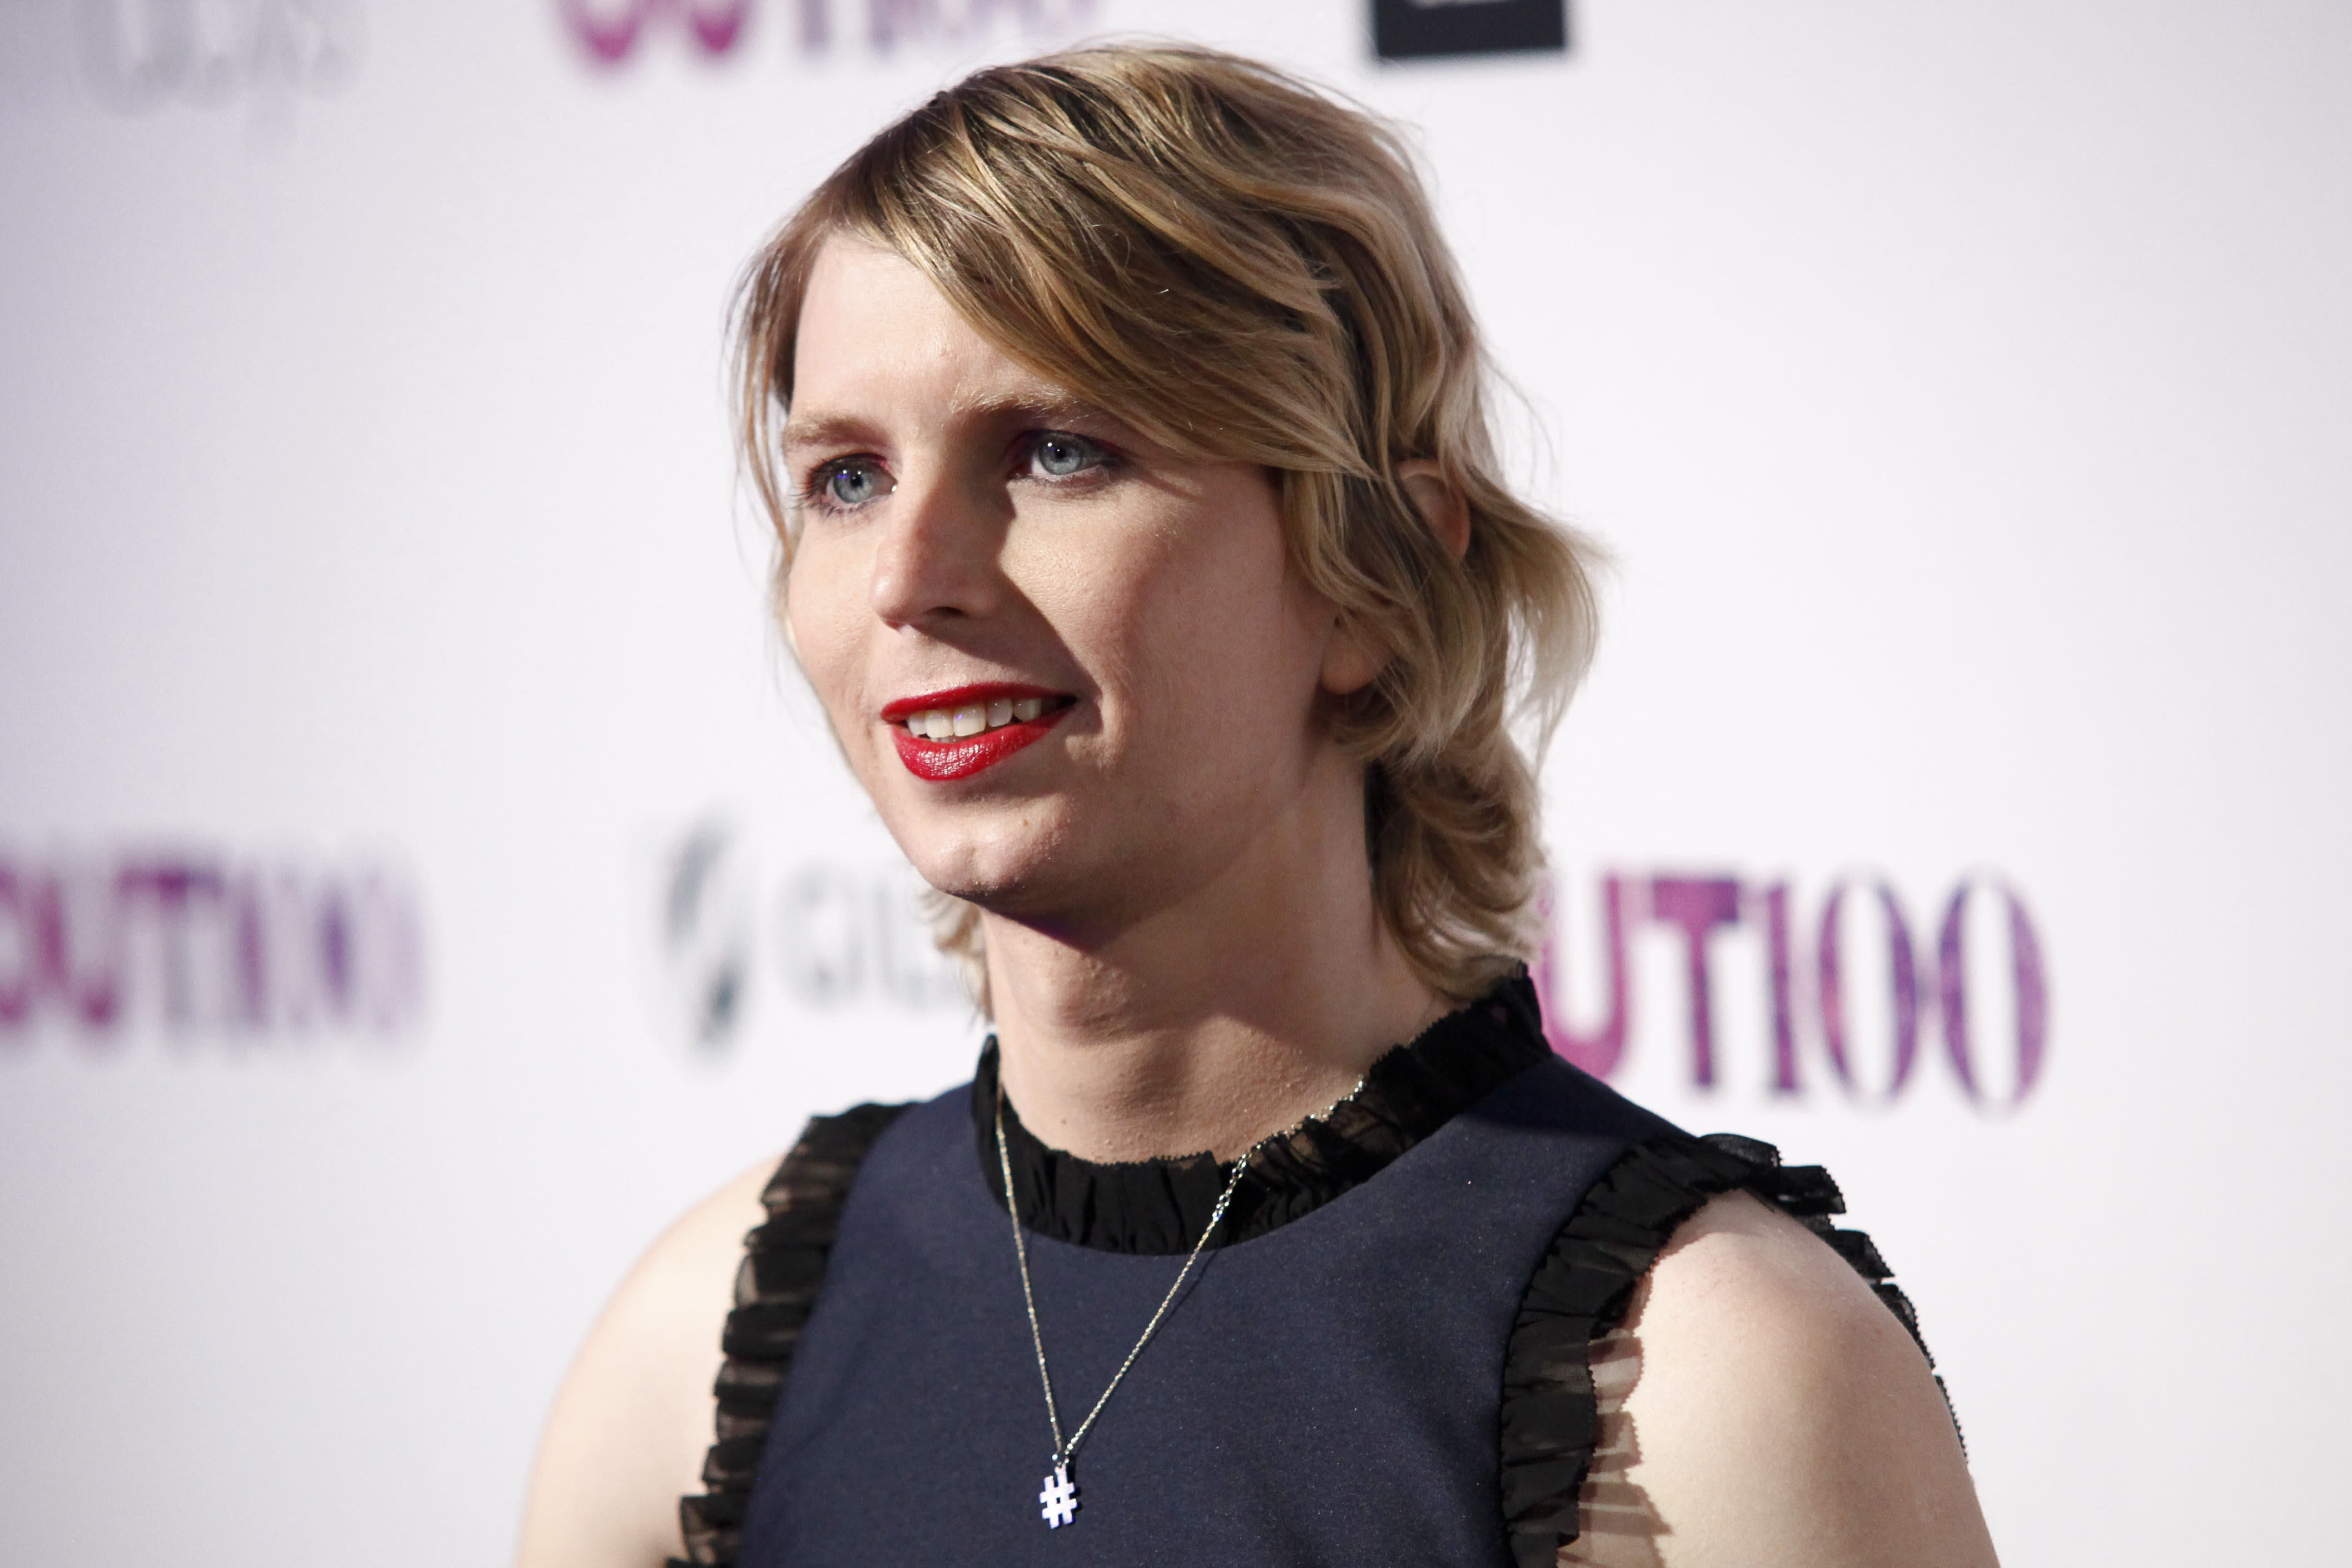 Chelsea Manning case: Judge orders release from prison